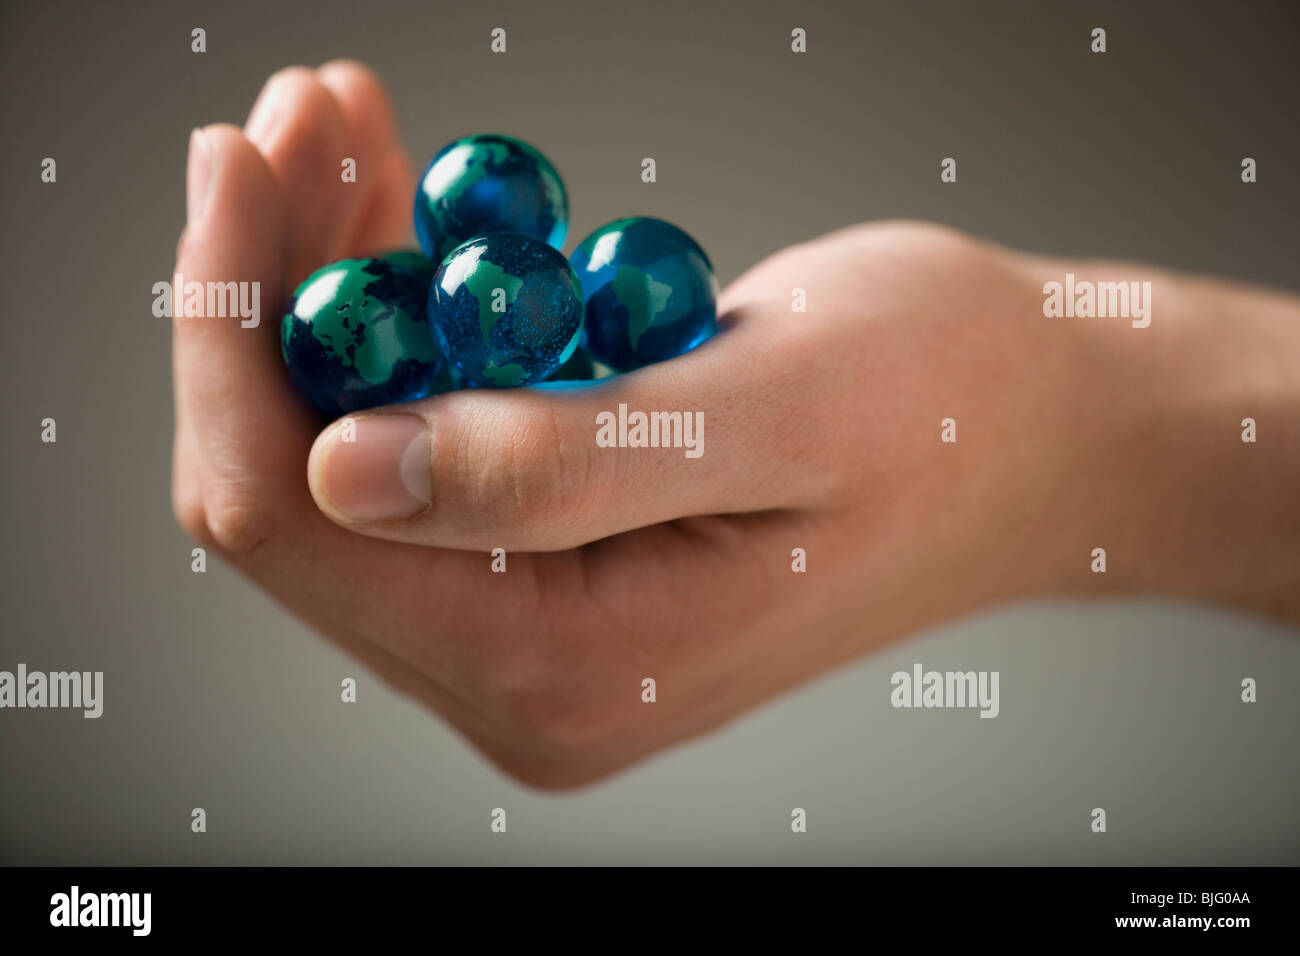 handful of marbles - Stock Image